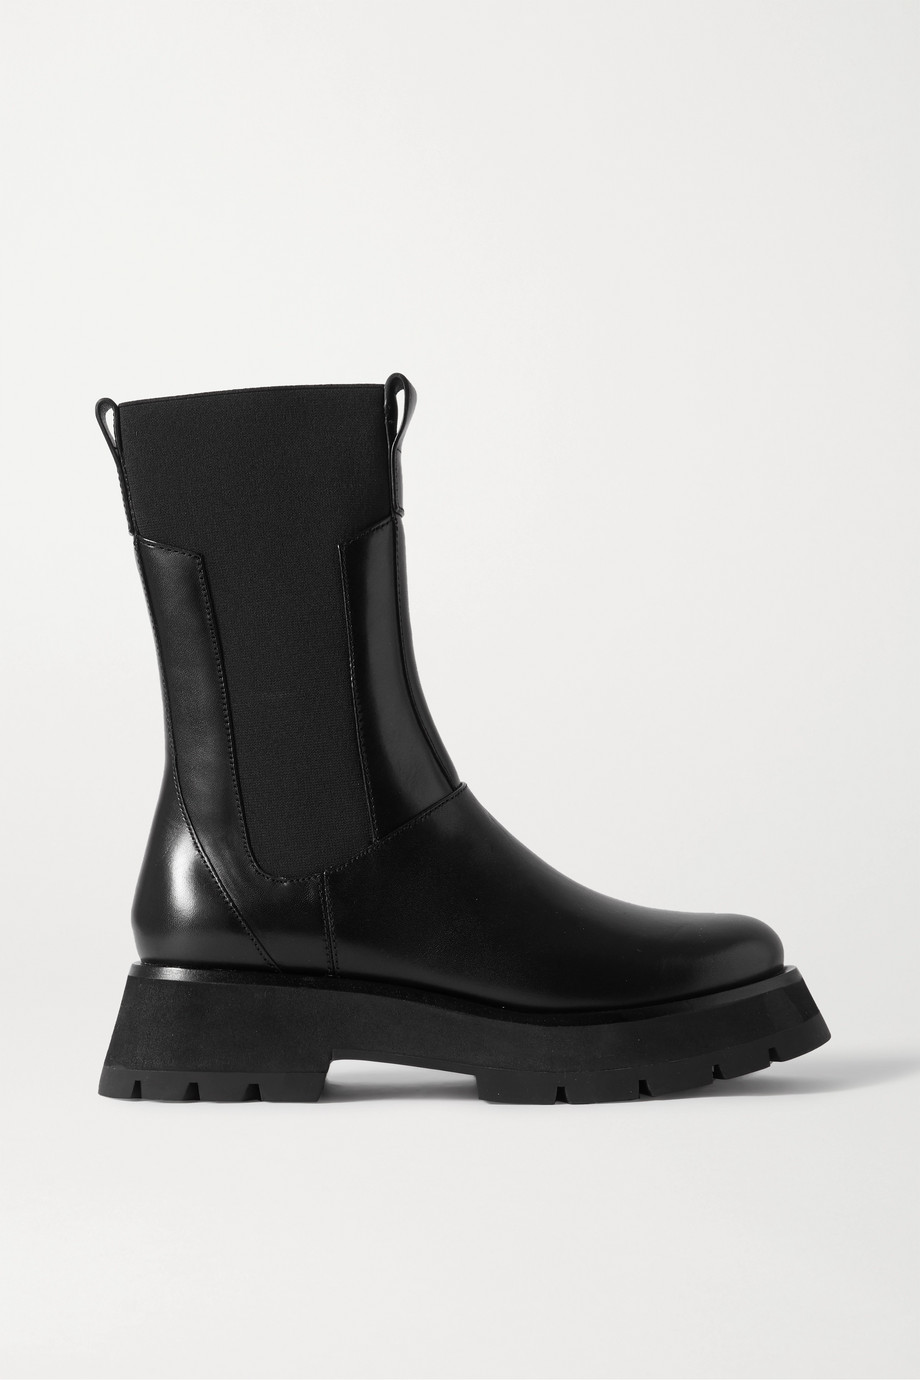 3.1 PHILLIP LIM Kate leather Chelsea combat boots